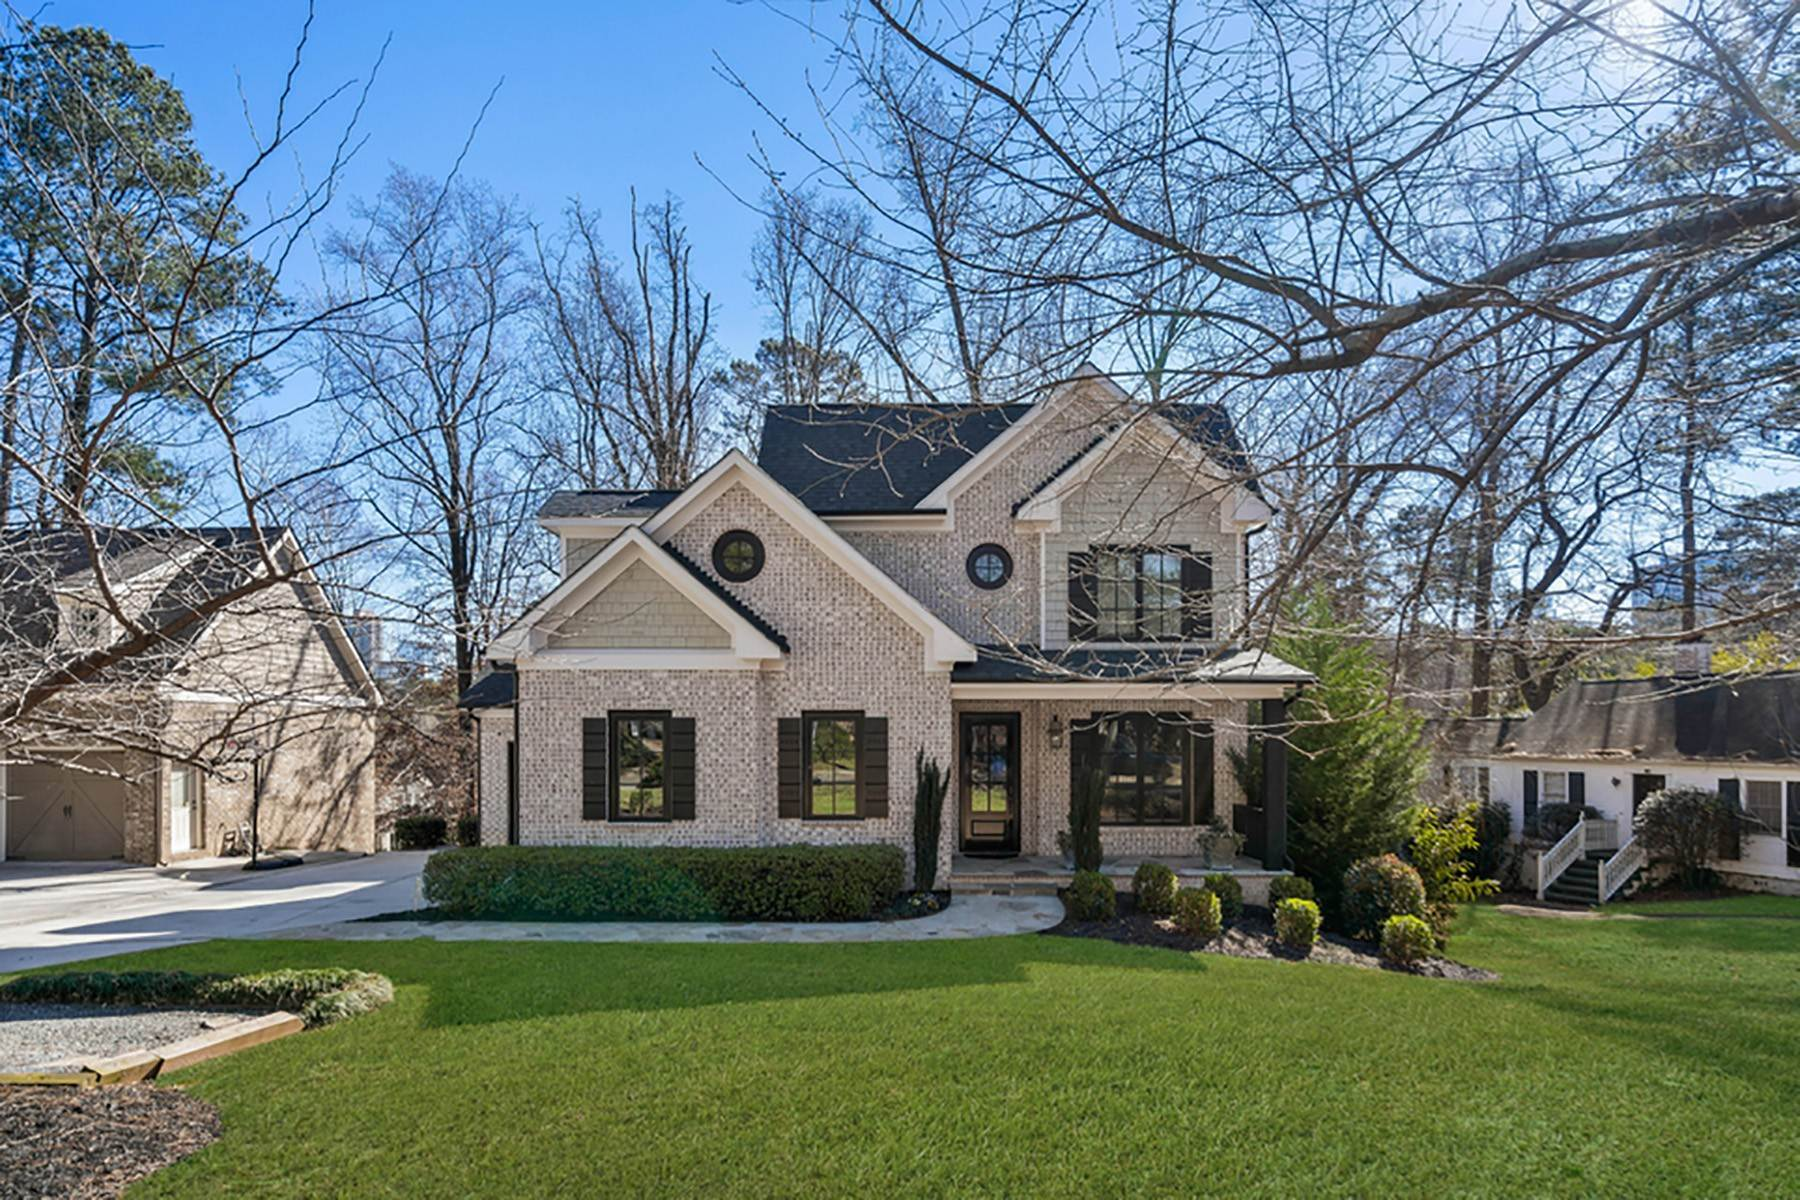 Single Family Homes for Sale at North Buckhead Home with Superior Quality and Finishes 229 Old Ivy Road NE Atlanta, Georgia 30342 United States